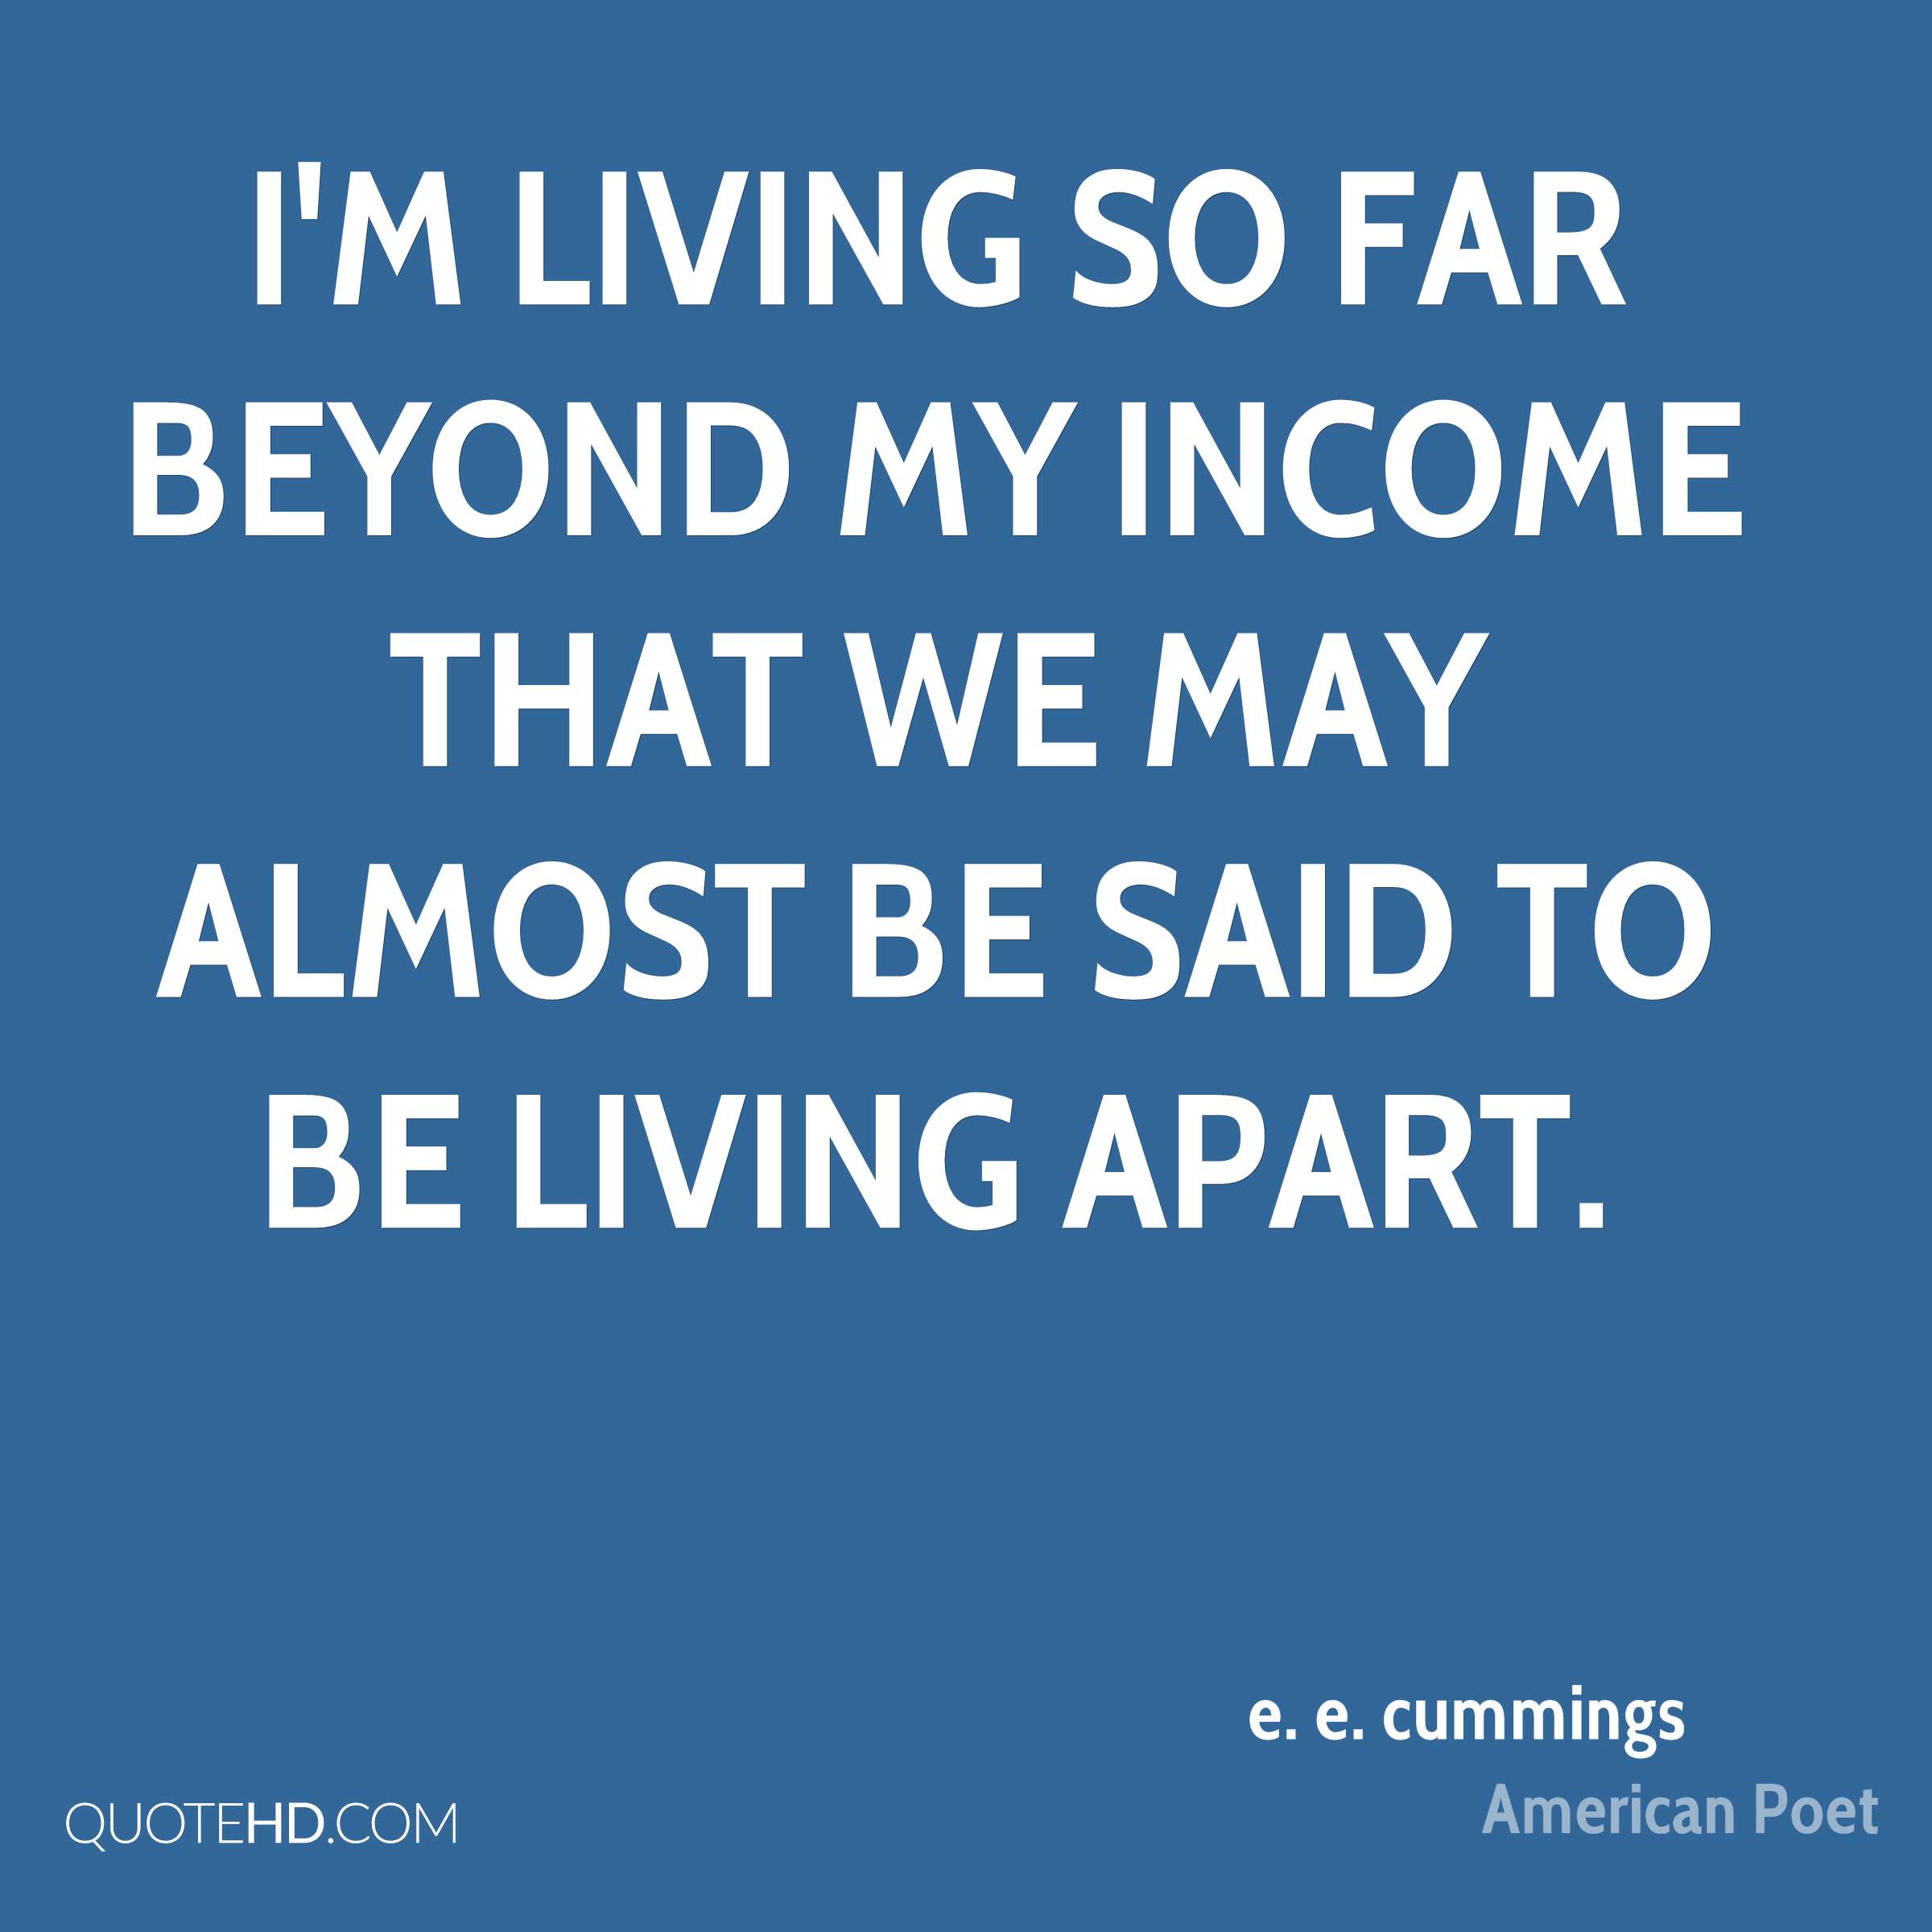 I'm living so far beyond my income that we may almost be said to be living apart.